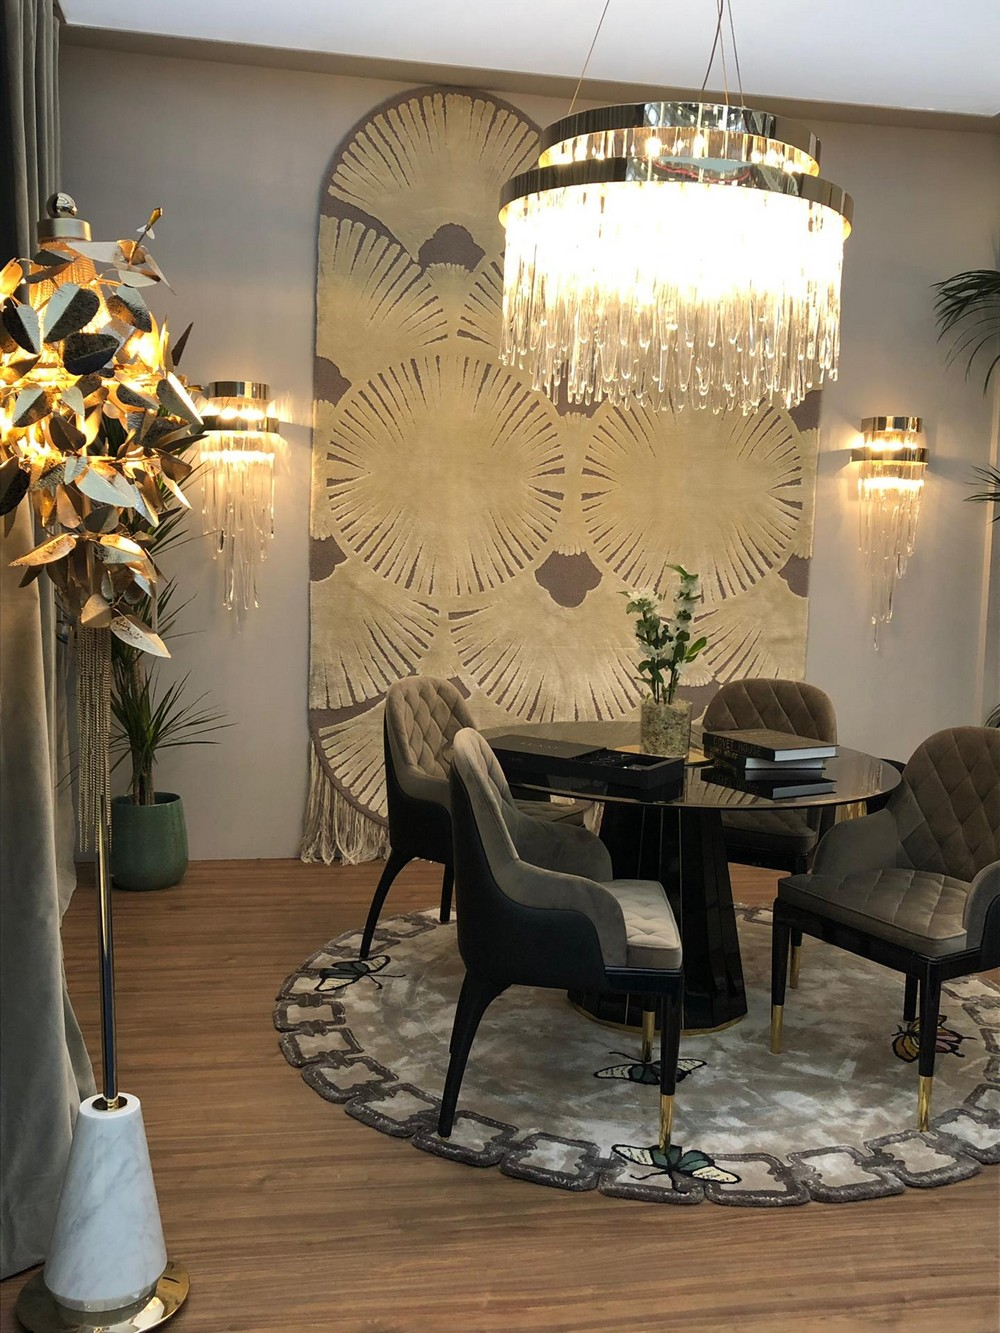 CovetED Unveiled The Best Home Decor Inspirations From Decorex 2019 decorex CovetED Unveiled The Best Home Decor Inspirations From Decorex 2019 CovetED Unveiled The Best Home Decor Inspirations From Decorex 2019 5